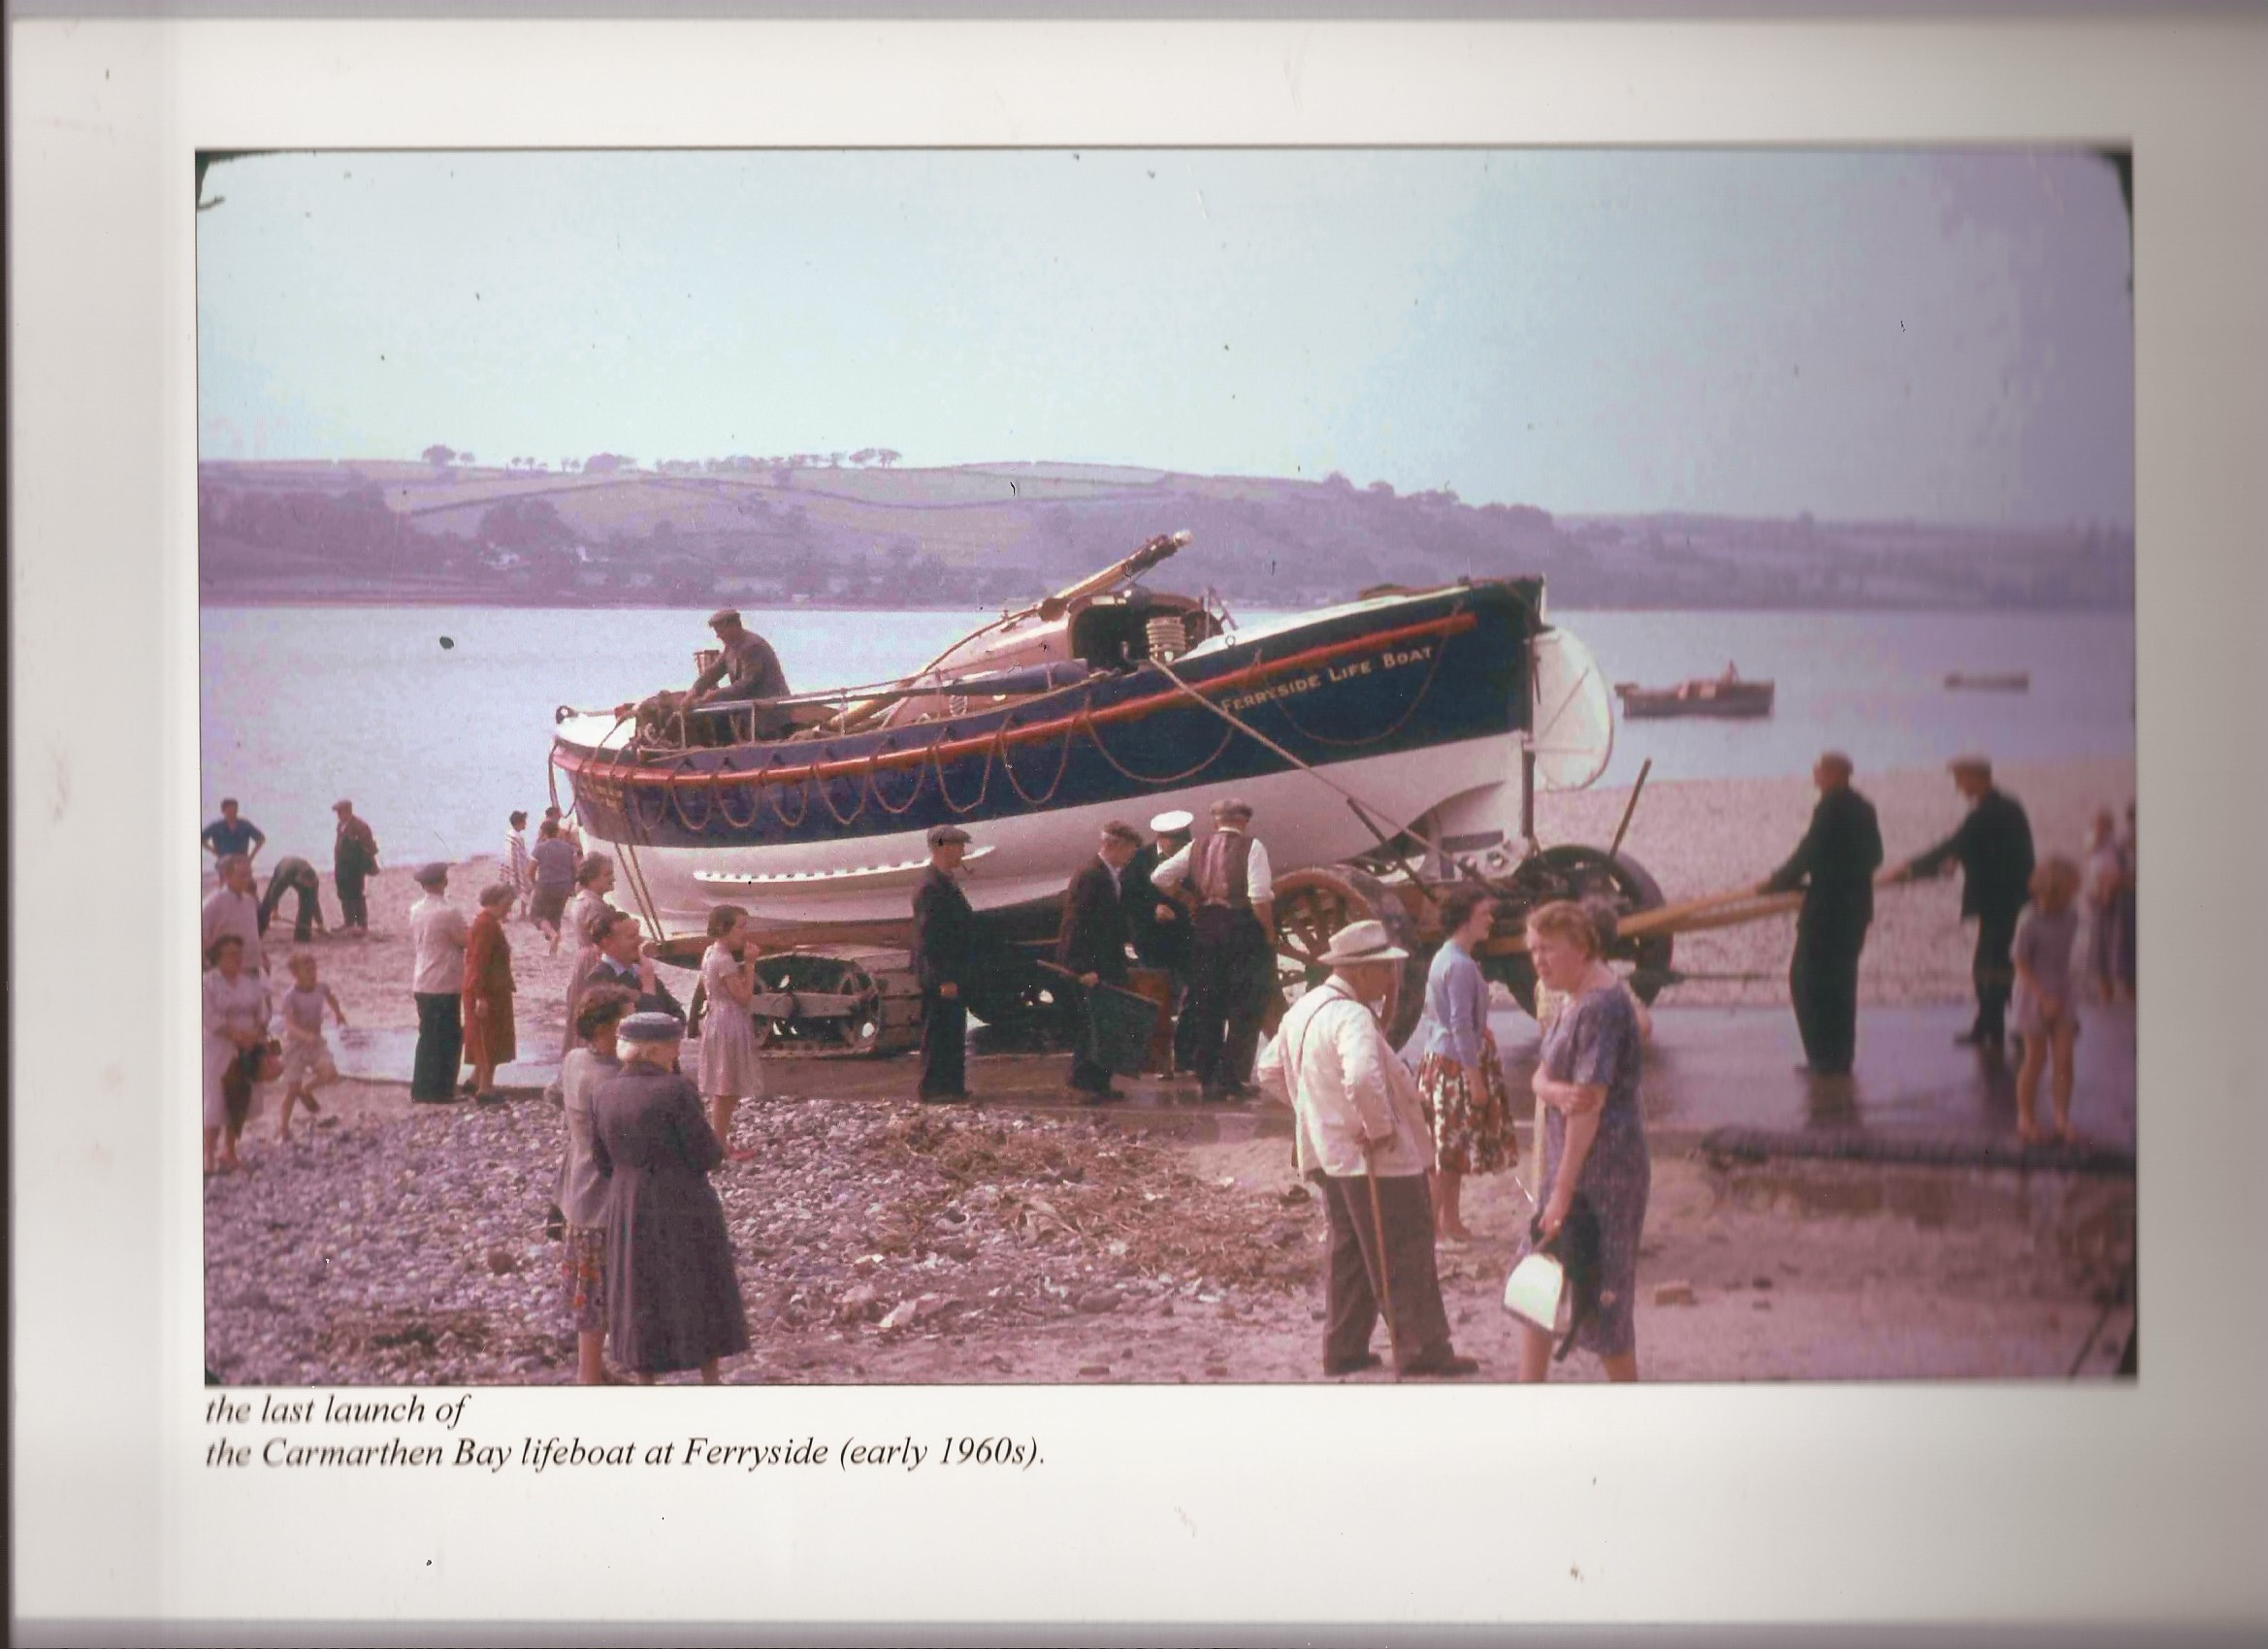 Last launch of the RNLI lifeboat in 1960